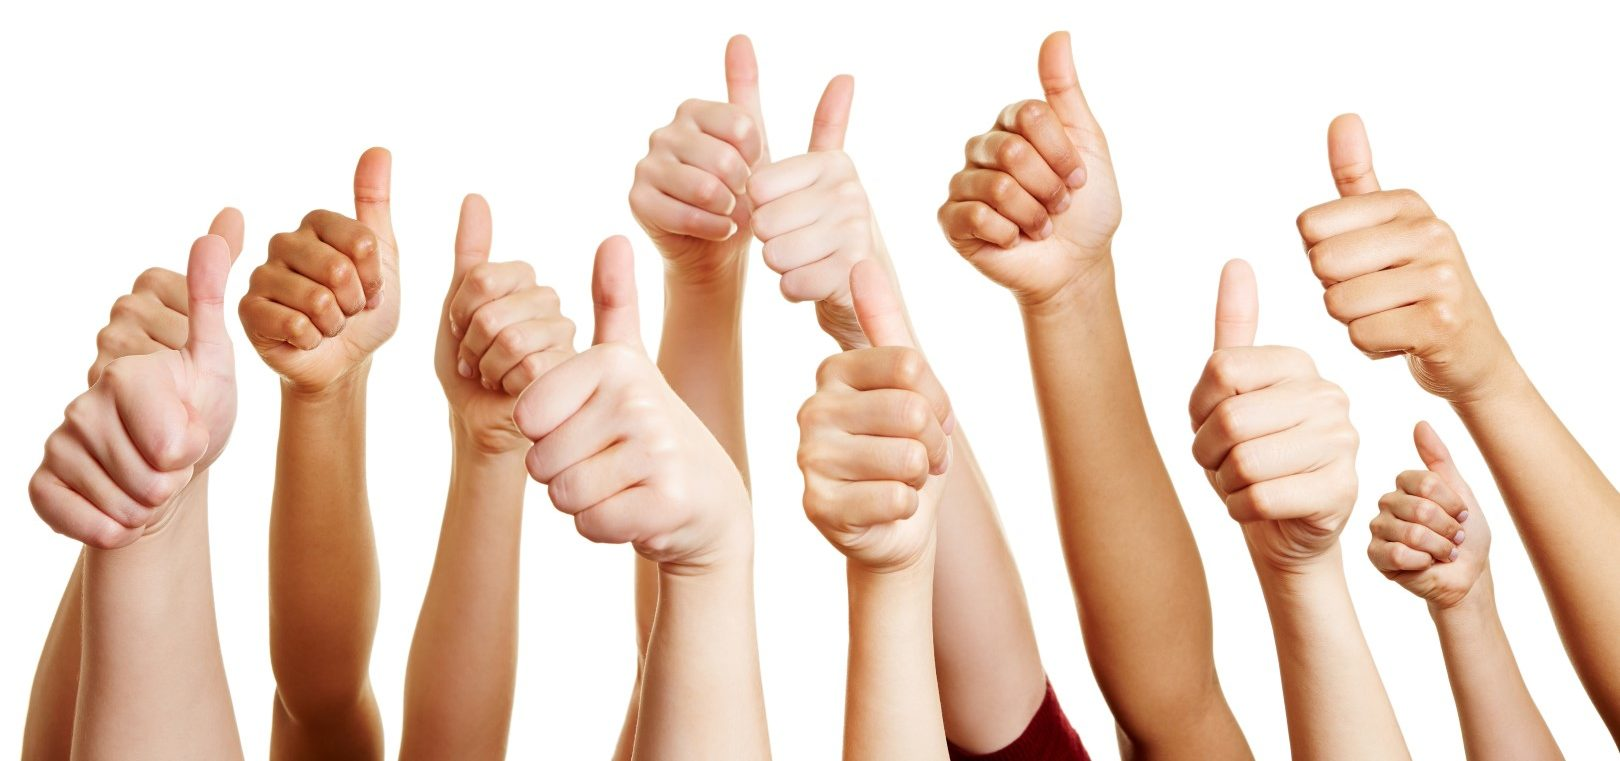 thumbs-up-Large-e1466097849312.jpg